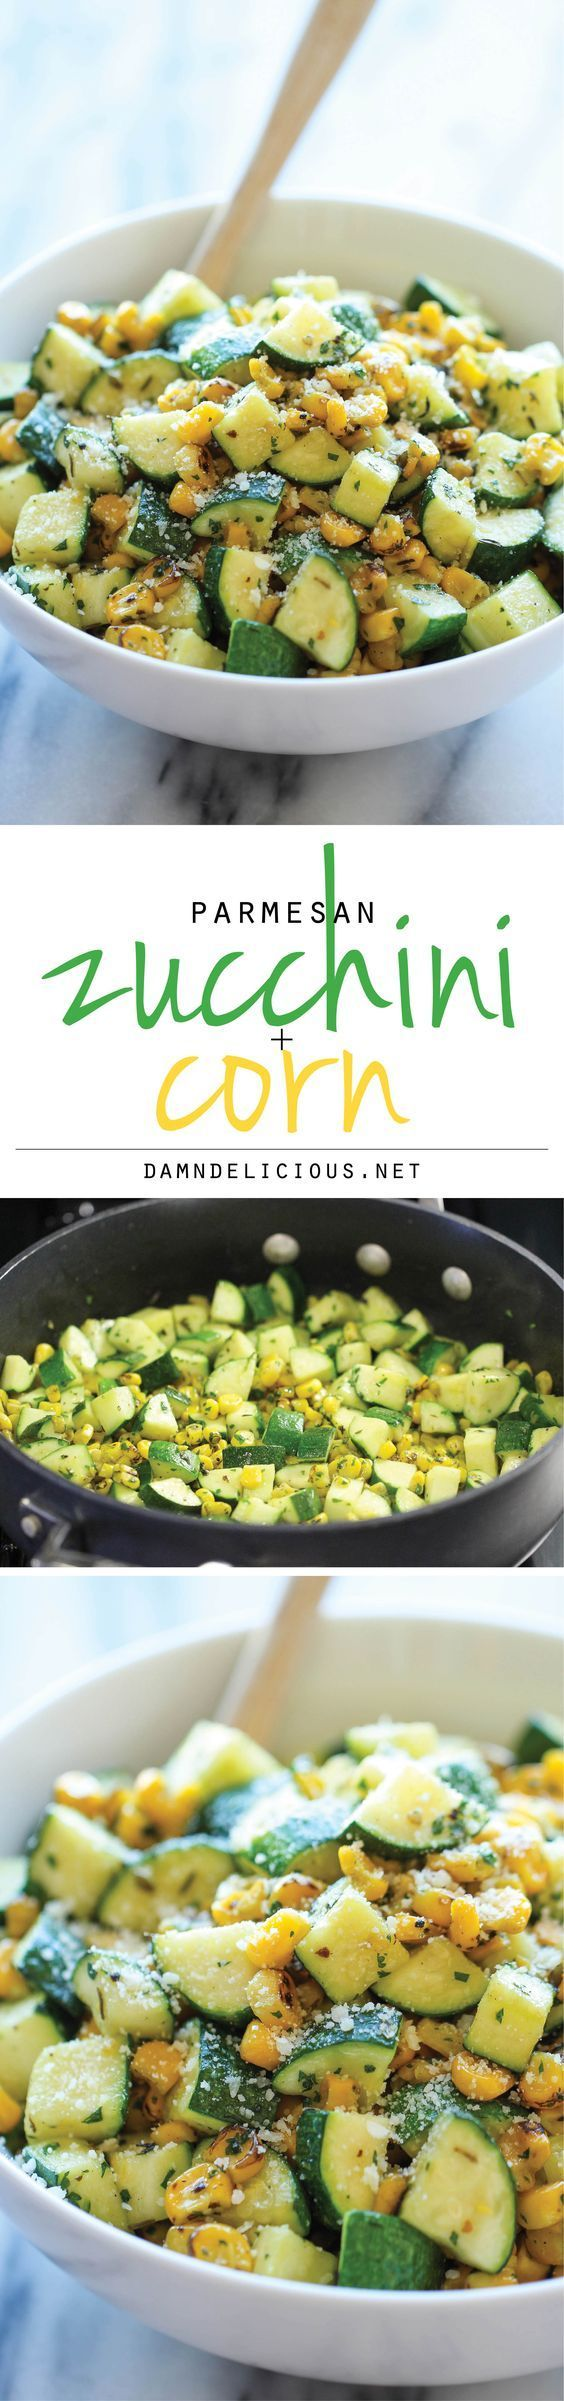 Parmesan Zucchini and Corn Vegetable Side Dish Recipe via Damn Delicious - A healthy 10 minute side dish to dress up any meal. It's so simple yet full of flavor! (eid meals sides)